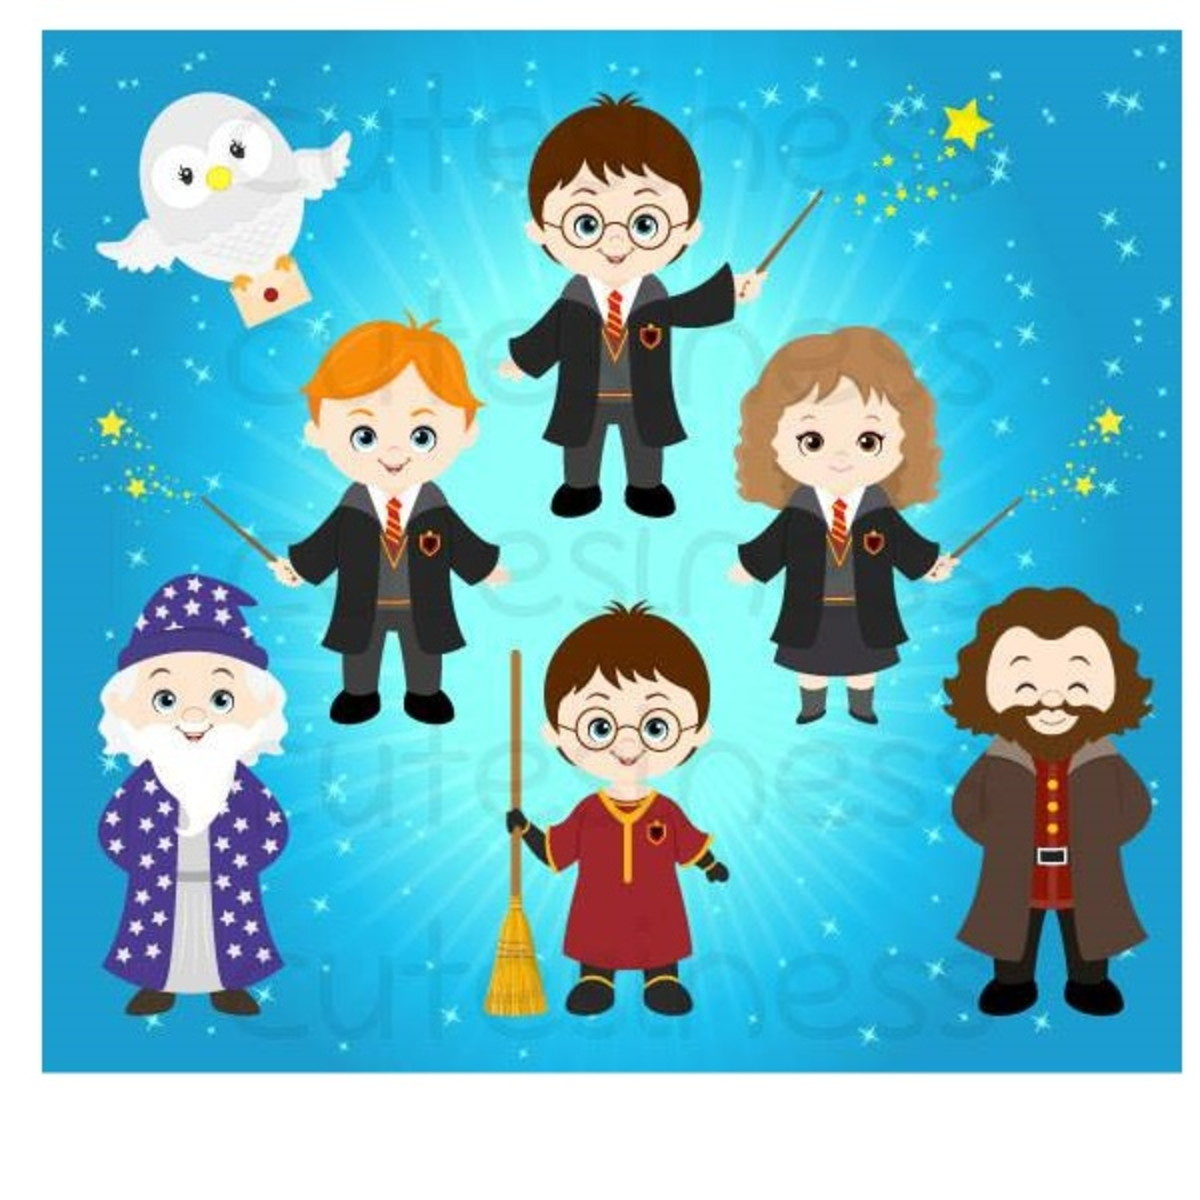 Harry potter clipart crianca graphic free stock Kit Digital Harry Potter Clipart graphic free stock